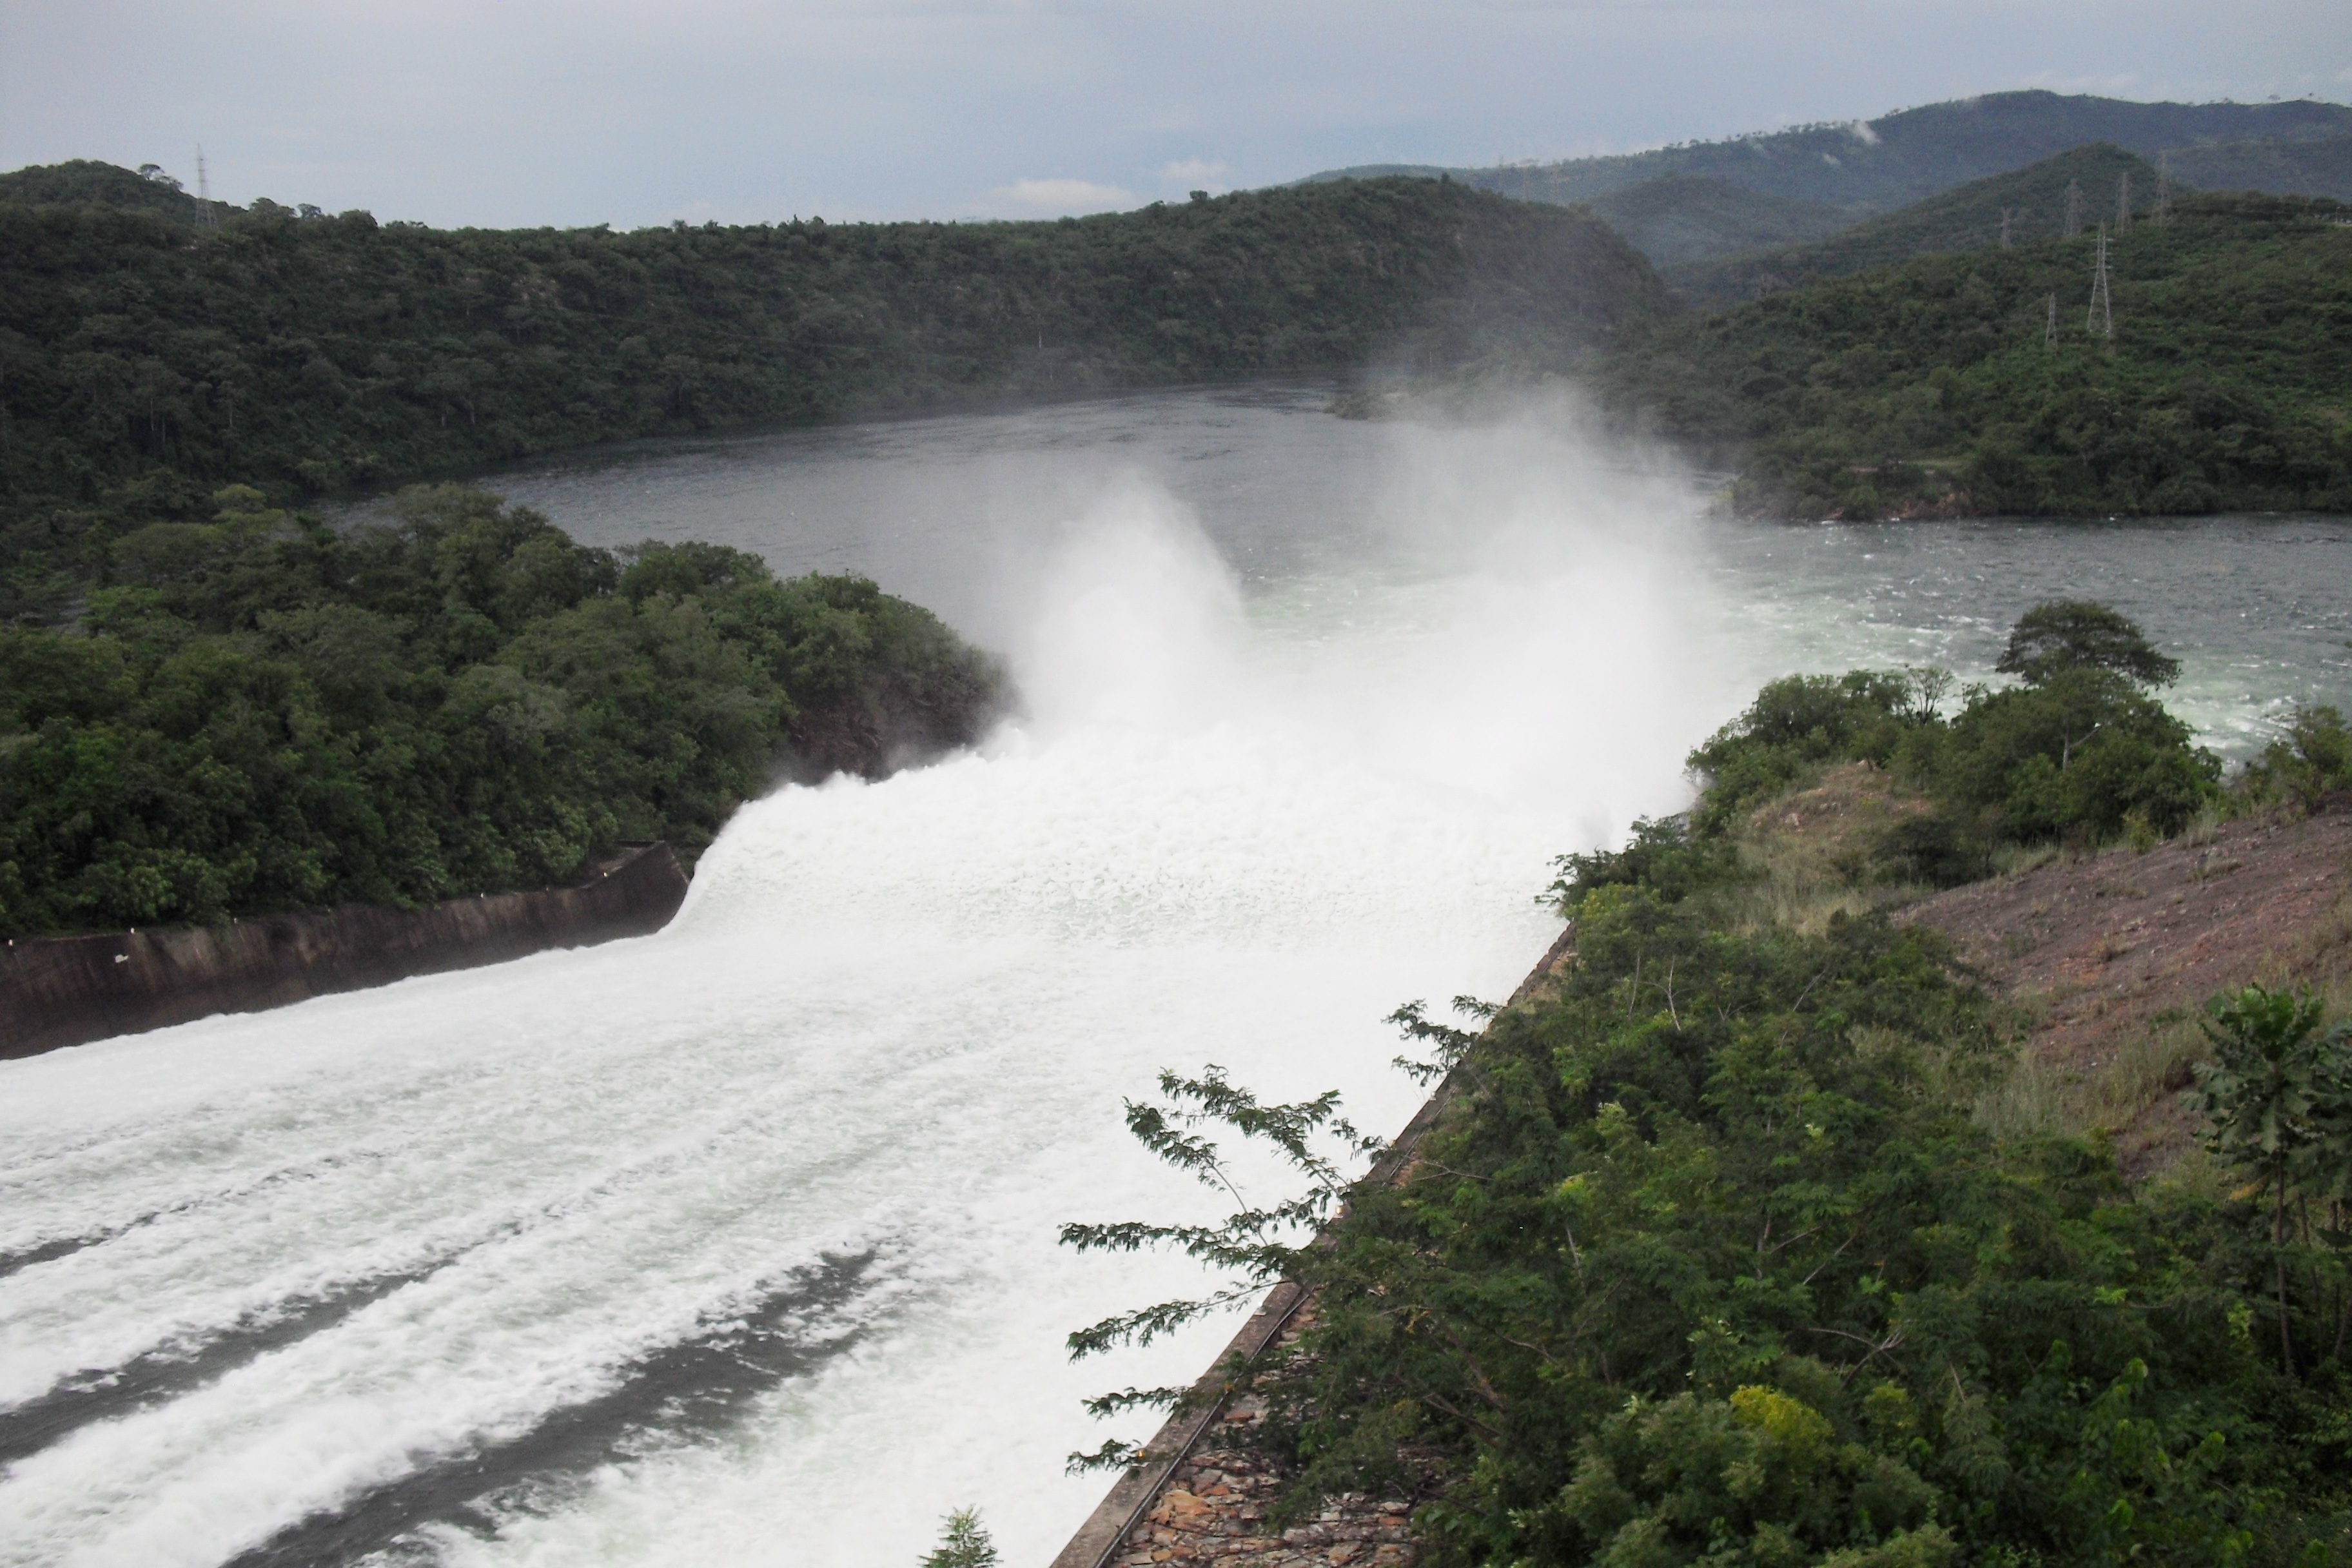 Akosombo Ghana  city pictures gallery : Description Akosombo Dam spilling water, Akosombo, Ghana 20101106 ...